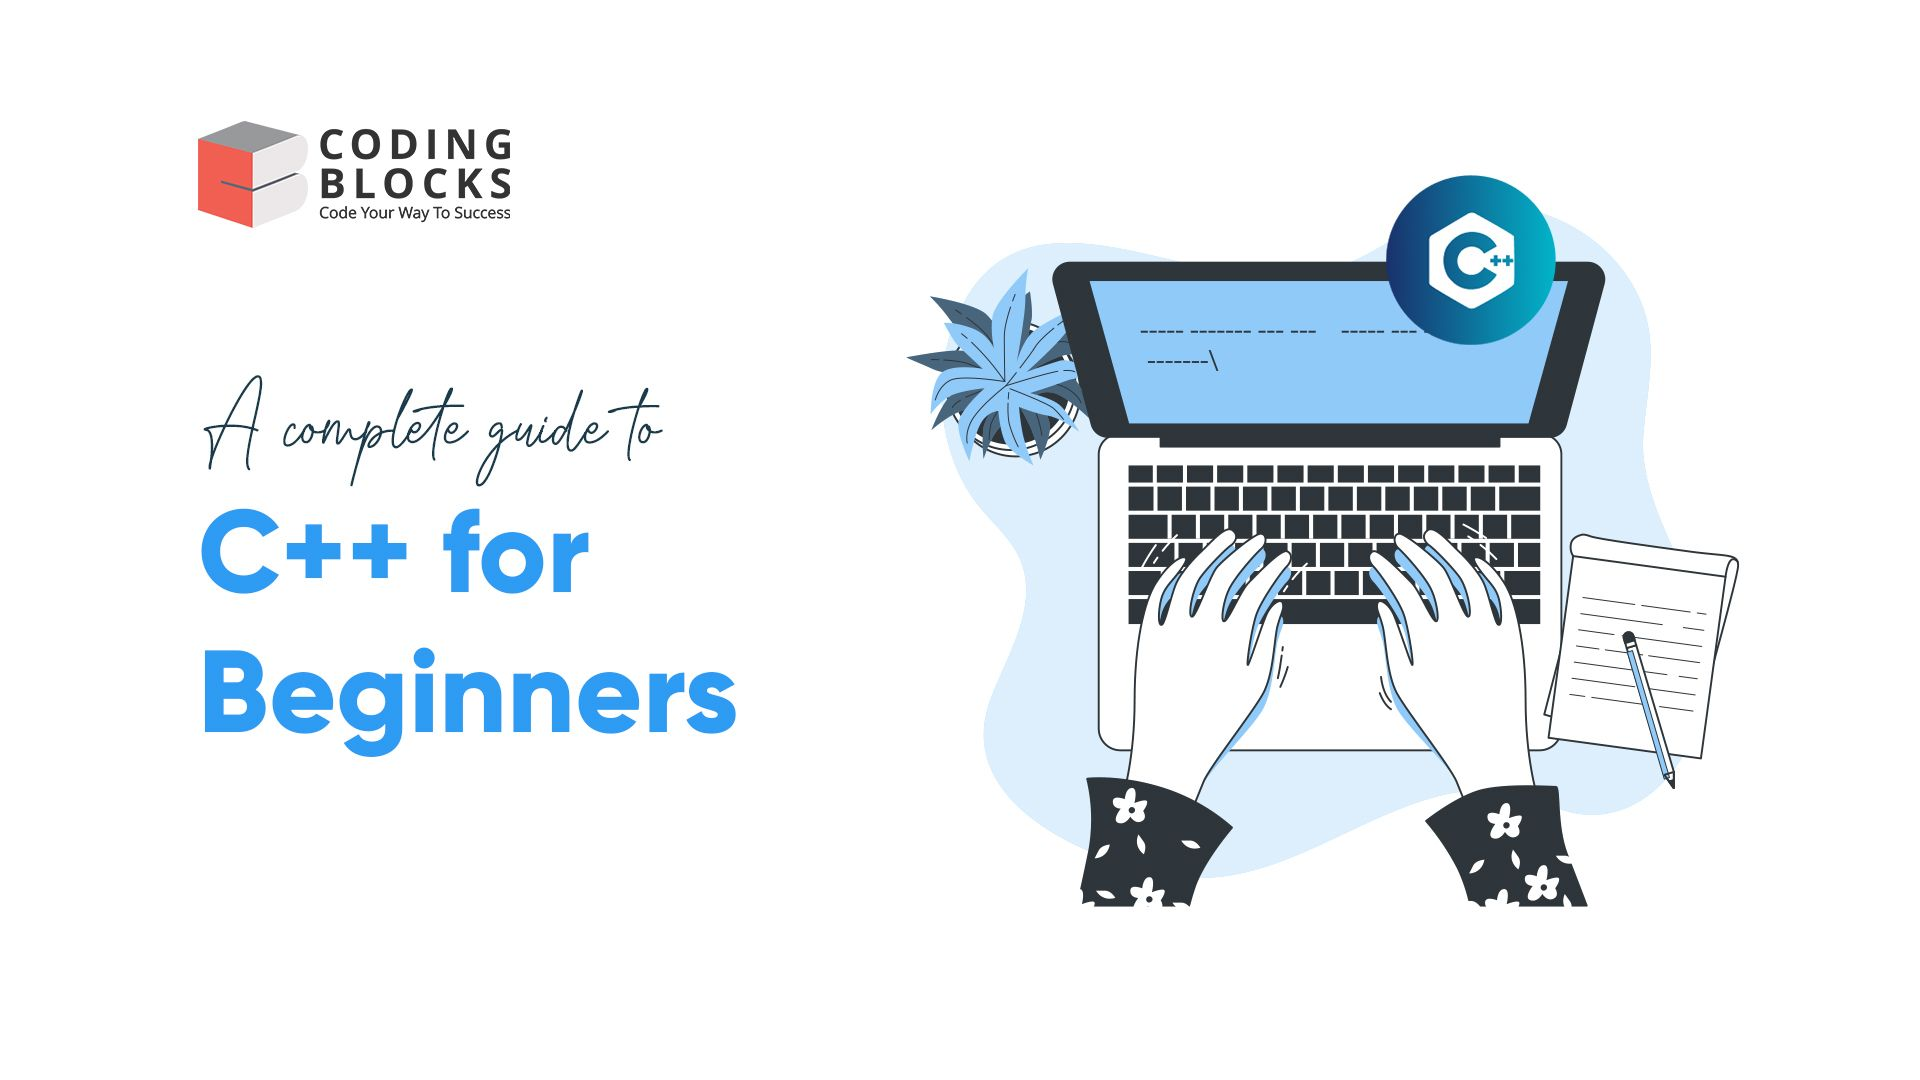 A thorough guide to C++ for Beginners